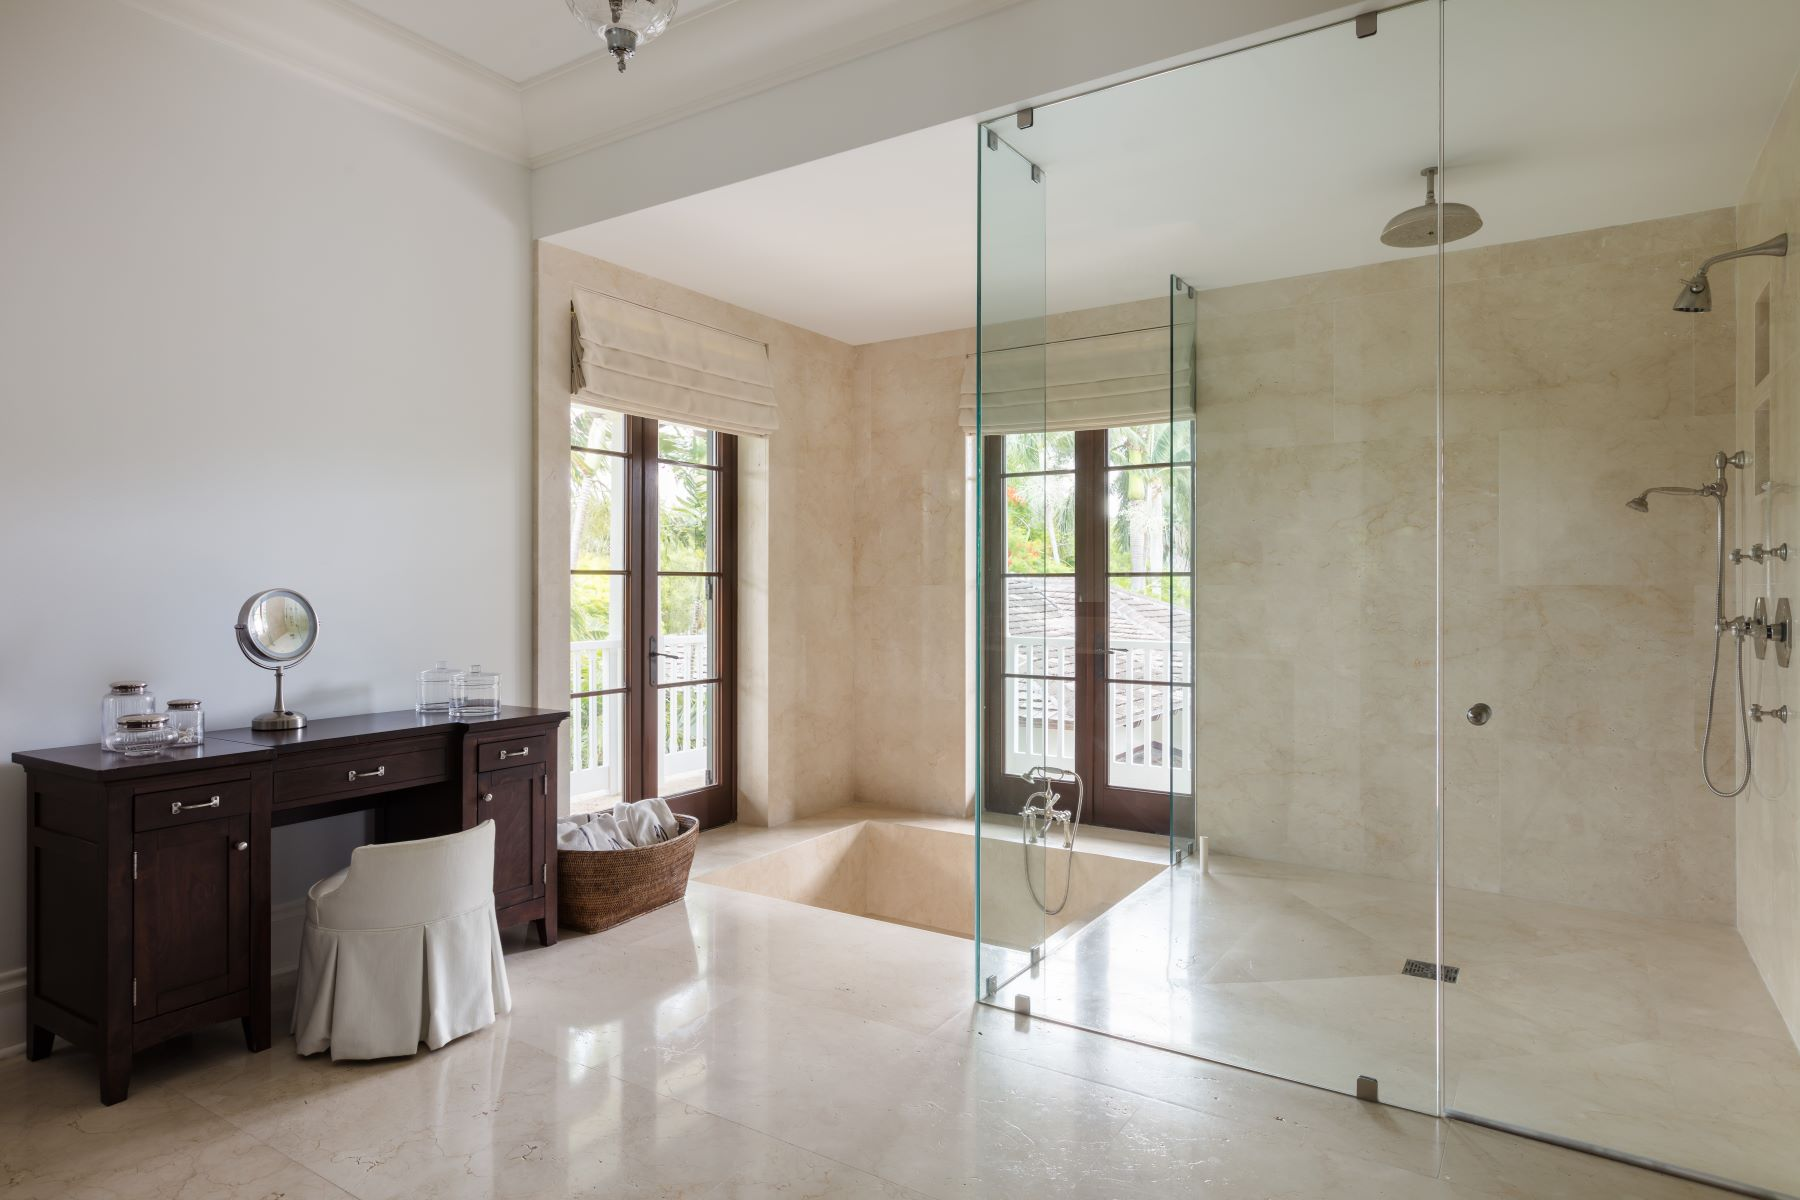 Additional photo for property listing at 700 Casuarina Concourse Coral Gables, Florida 33143 United States